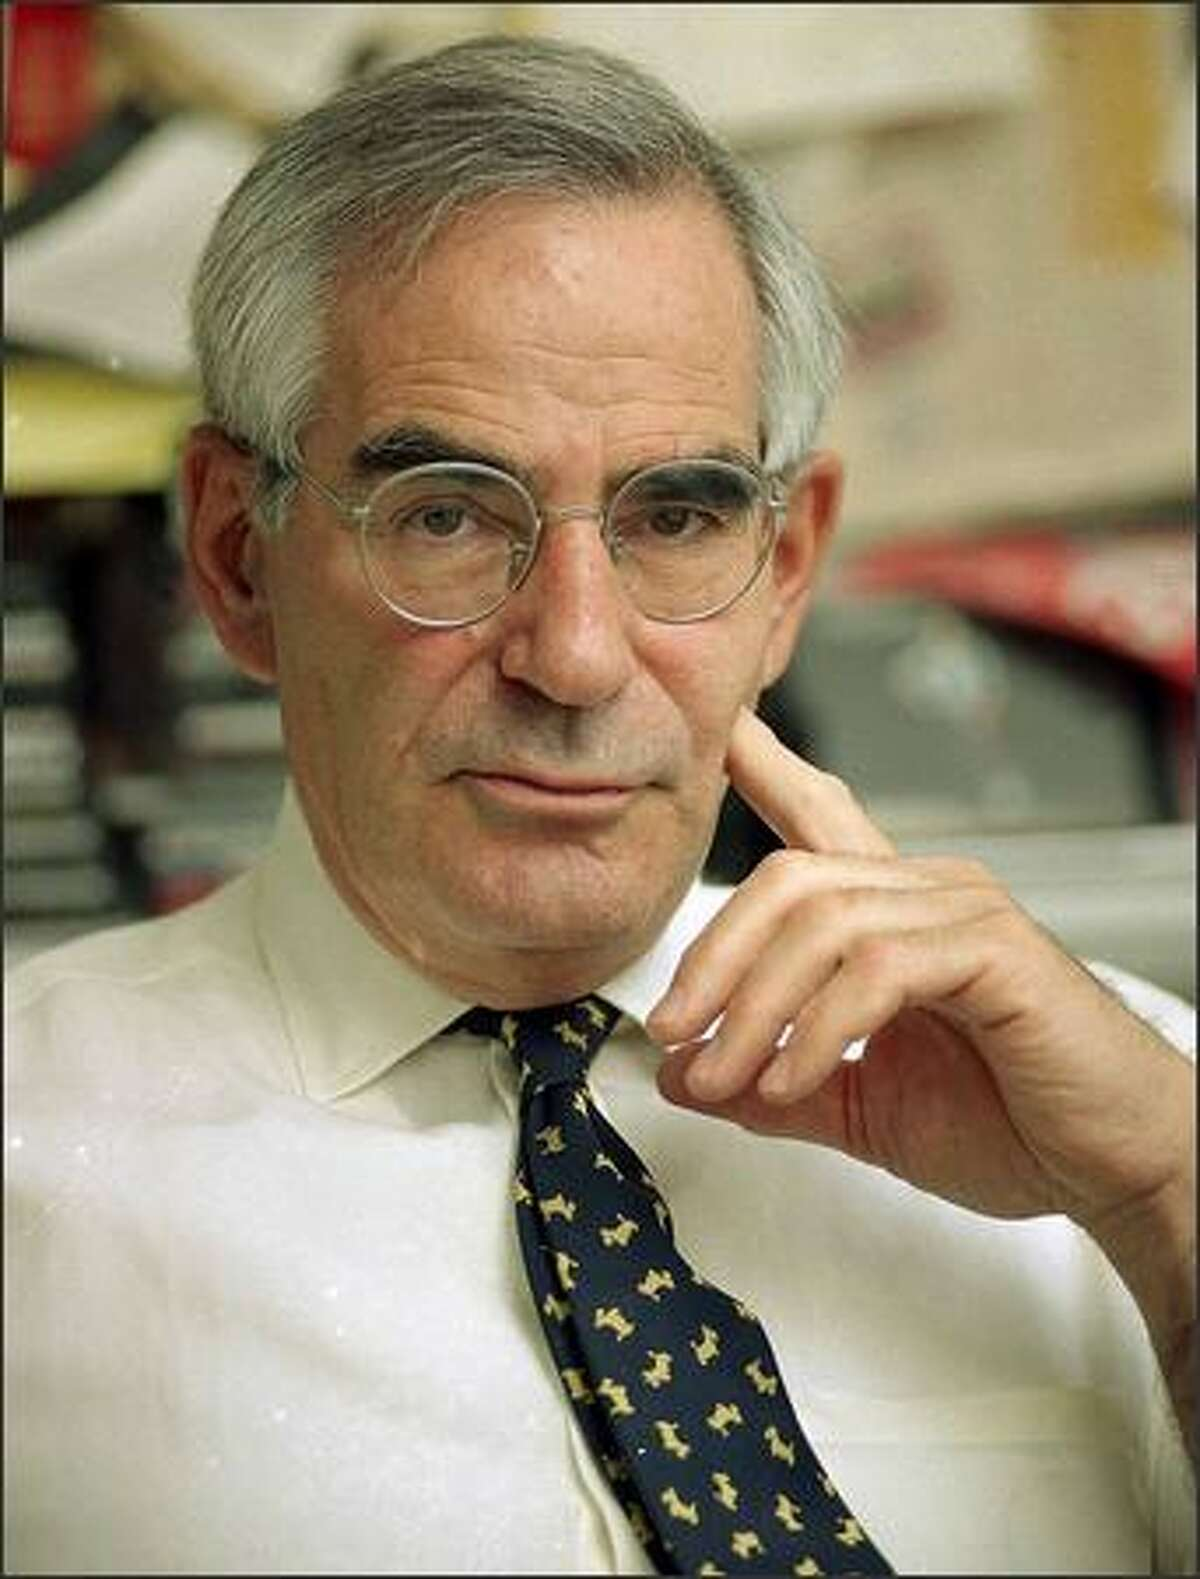 Journalist and author David Halberstam is shown in his Manhattan office in this May 14, 1993 file photo. Halberstam, a Pulitzer Prize-winning author who chronicled the Washington press corps, the Vietnam War generation and baseball, was killed in a car crash early Monday. He was 73.